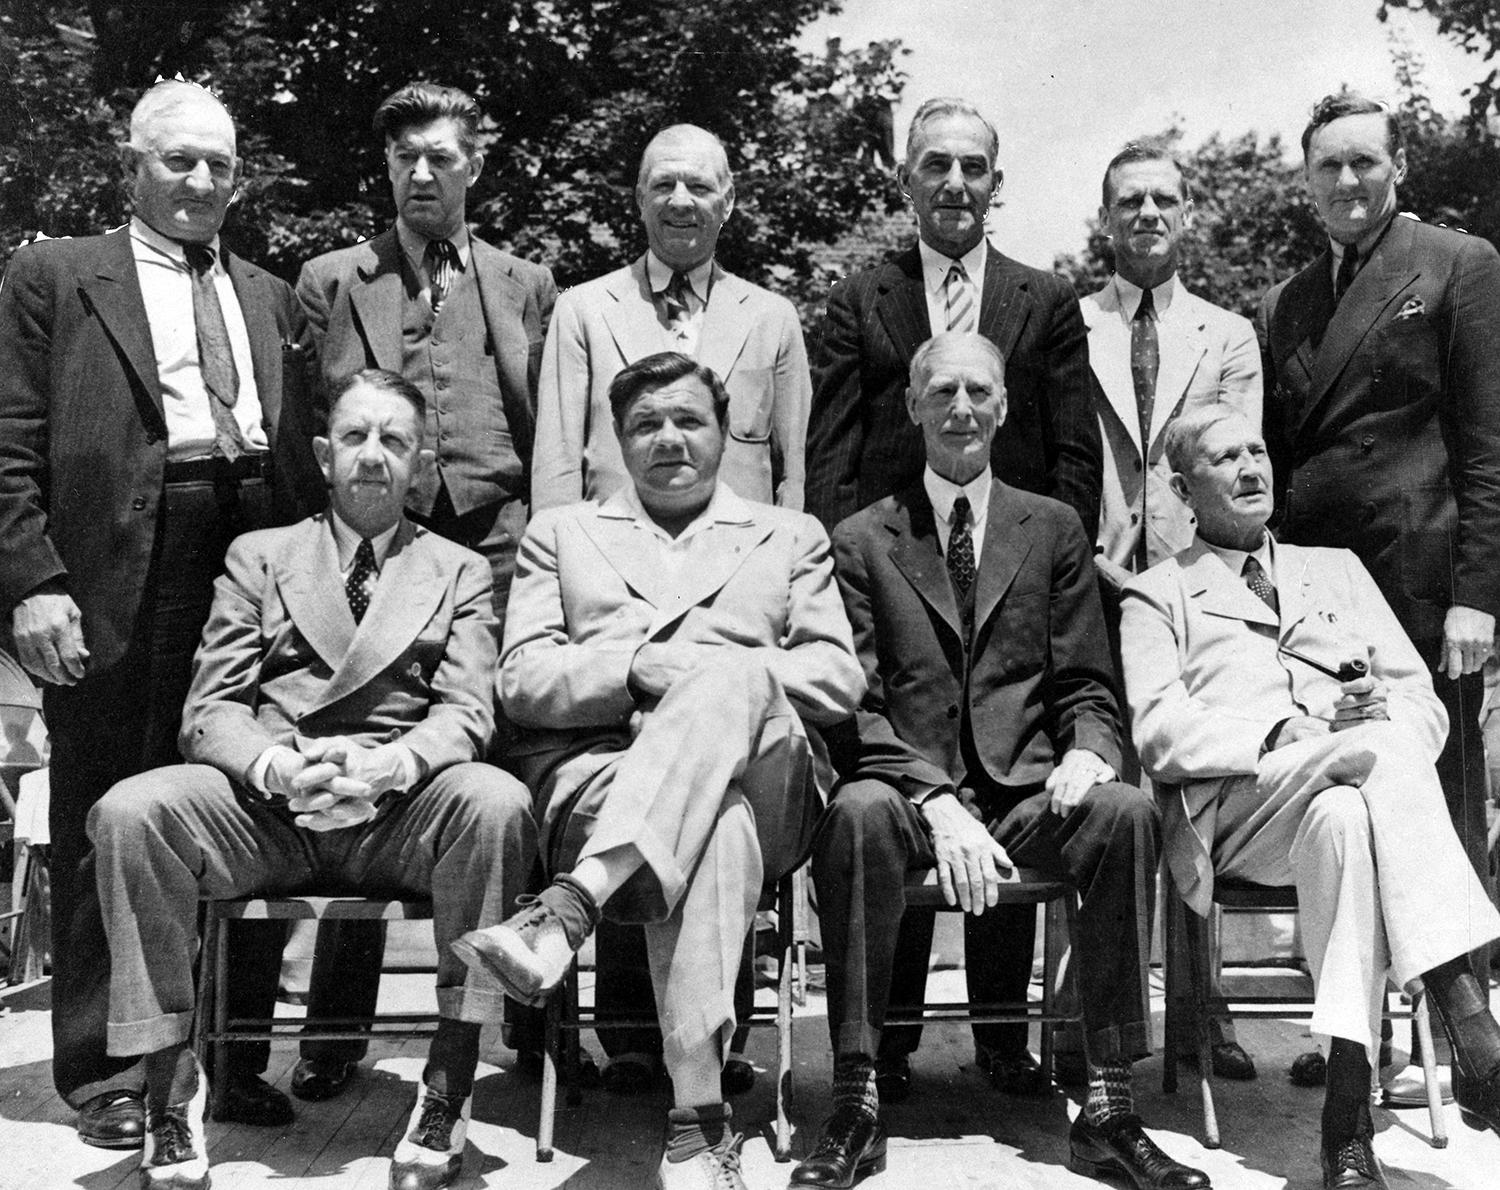 Pictured above, a group shot of the living members of the Hall of Fame Classes of 1936, 1937, 1938 and 1939, at the first Induction Ceremony (missing from photo: Ty Cobb). Back row (left to right): Honus Wagner, Grover Cleveland Alexander, Tris Speaker, Nap Lajoie, George Sisler, and Walter Johnson. Front row (left to right): Eddie Collins, Babe Ruth, Connie Mack and Cy Young. (National Baseball Hall of Fame)